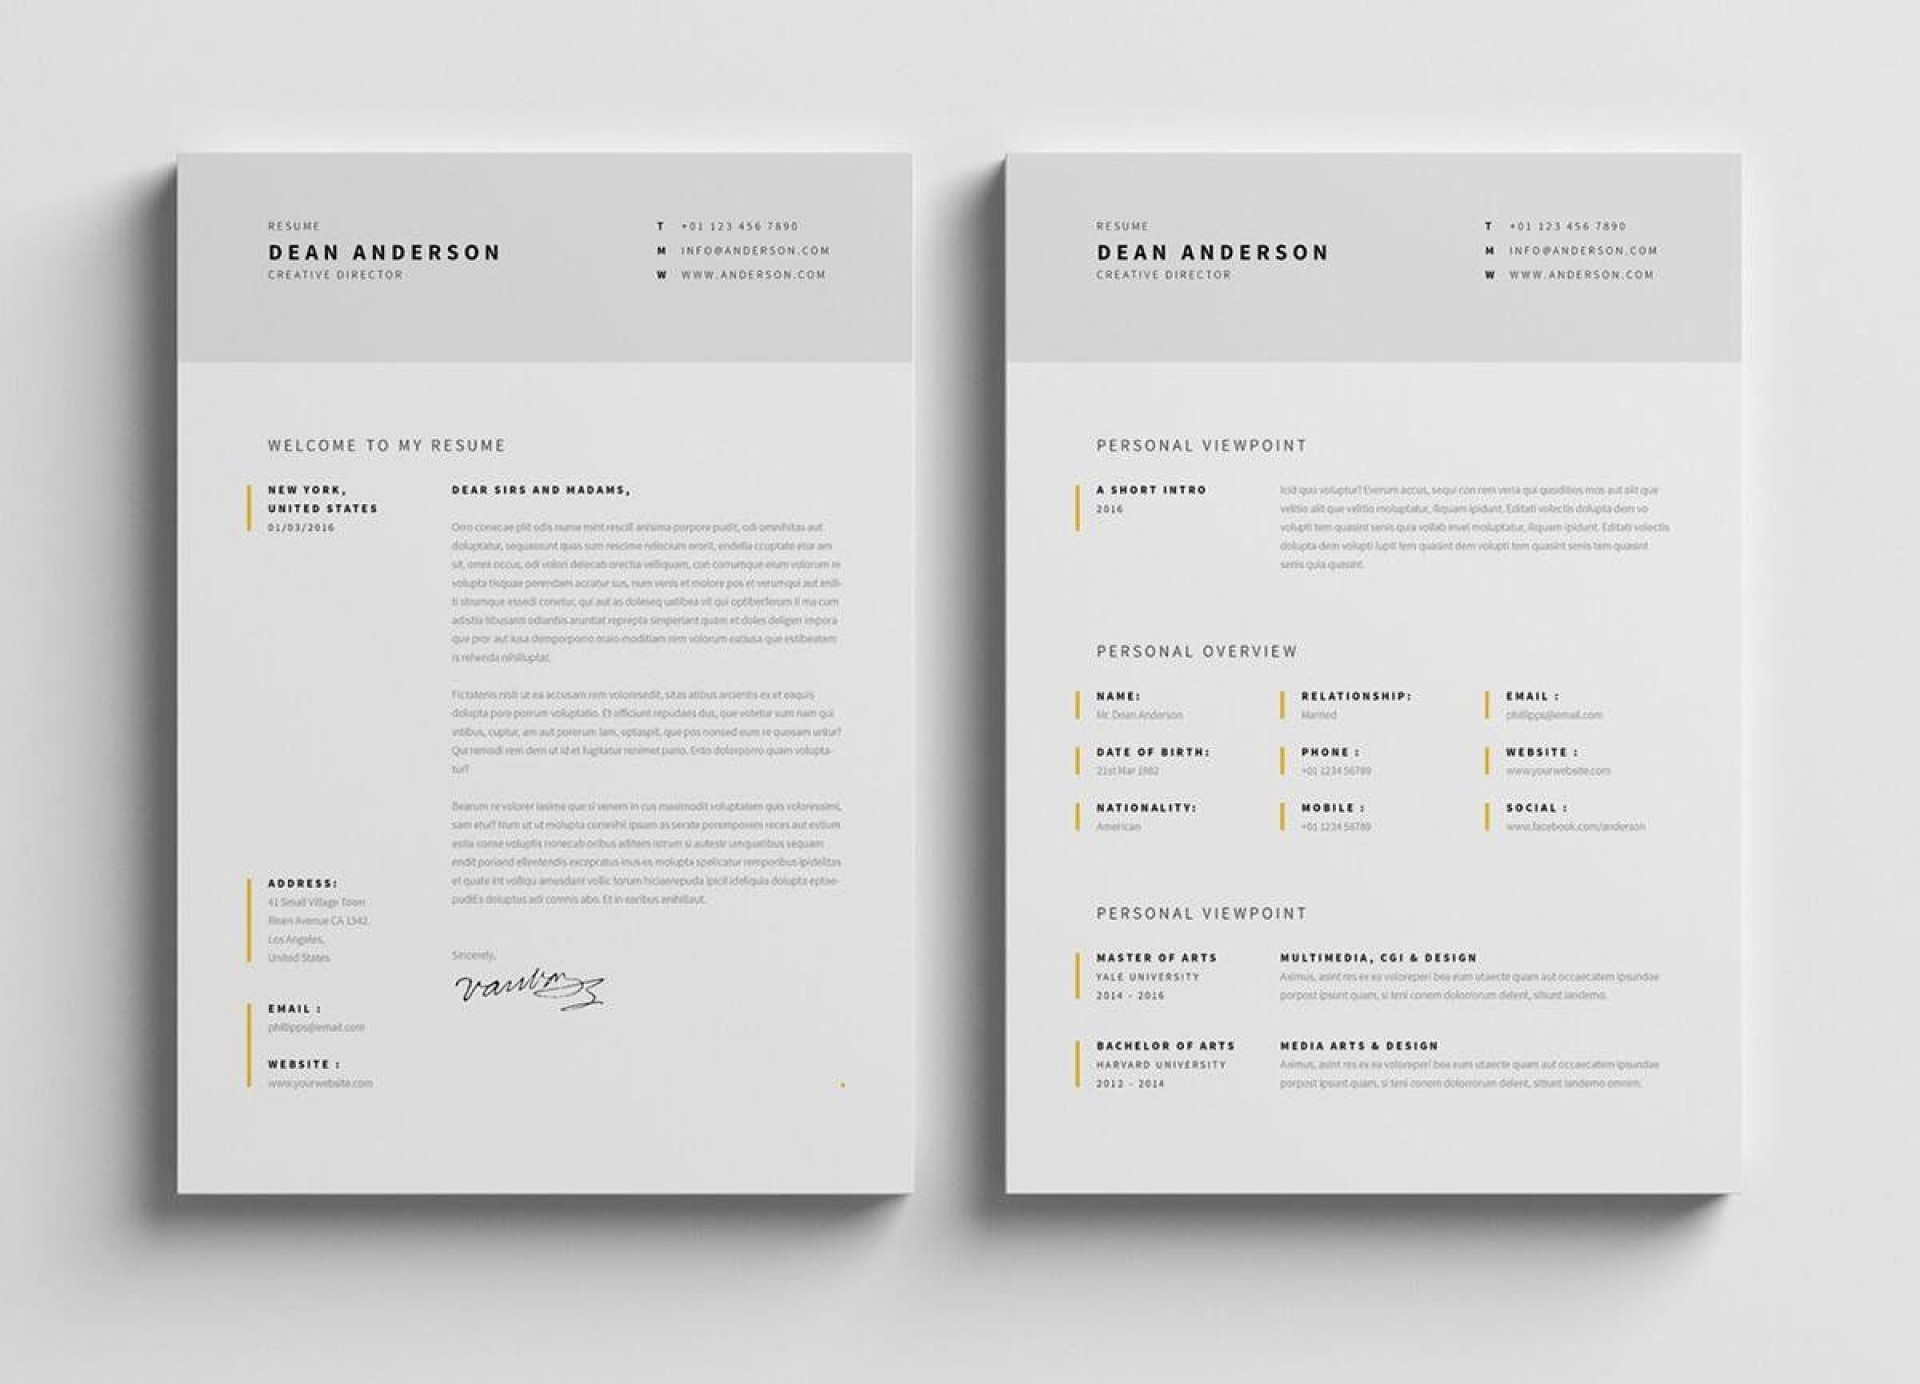 005 Outstanding Free Student Resume Template Download Image  Word1920